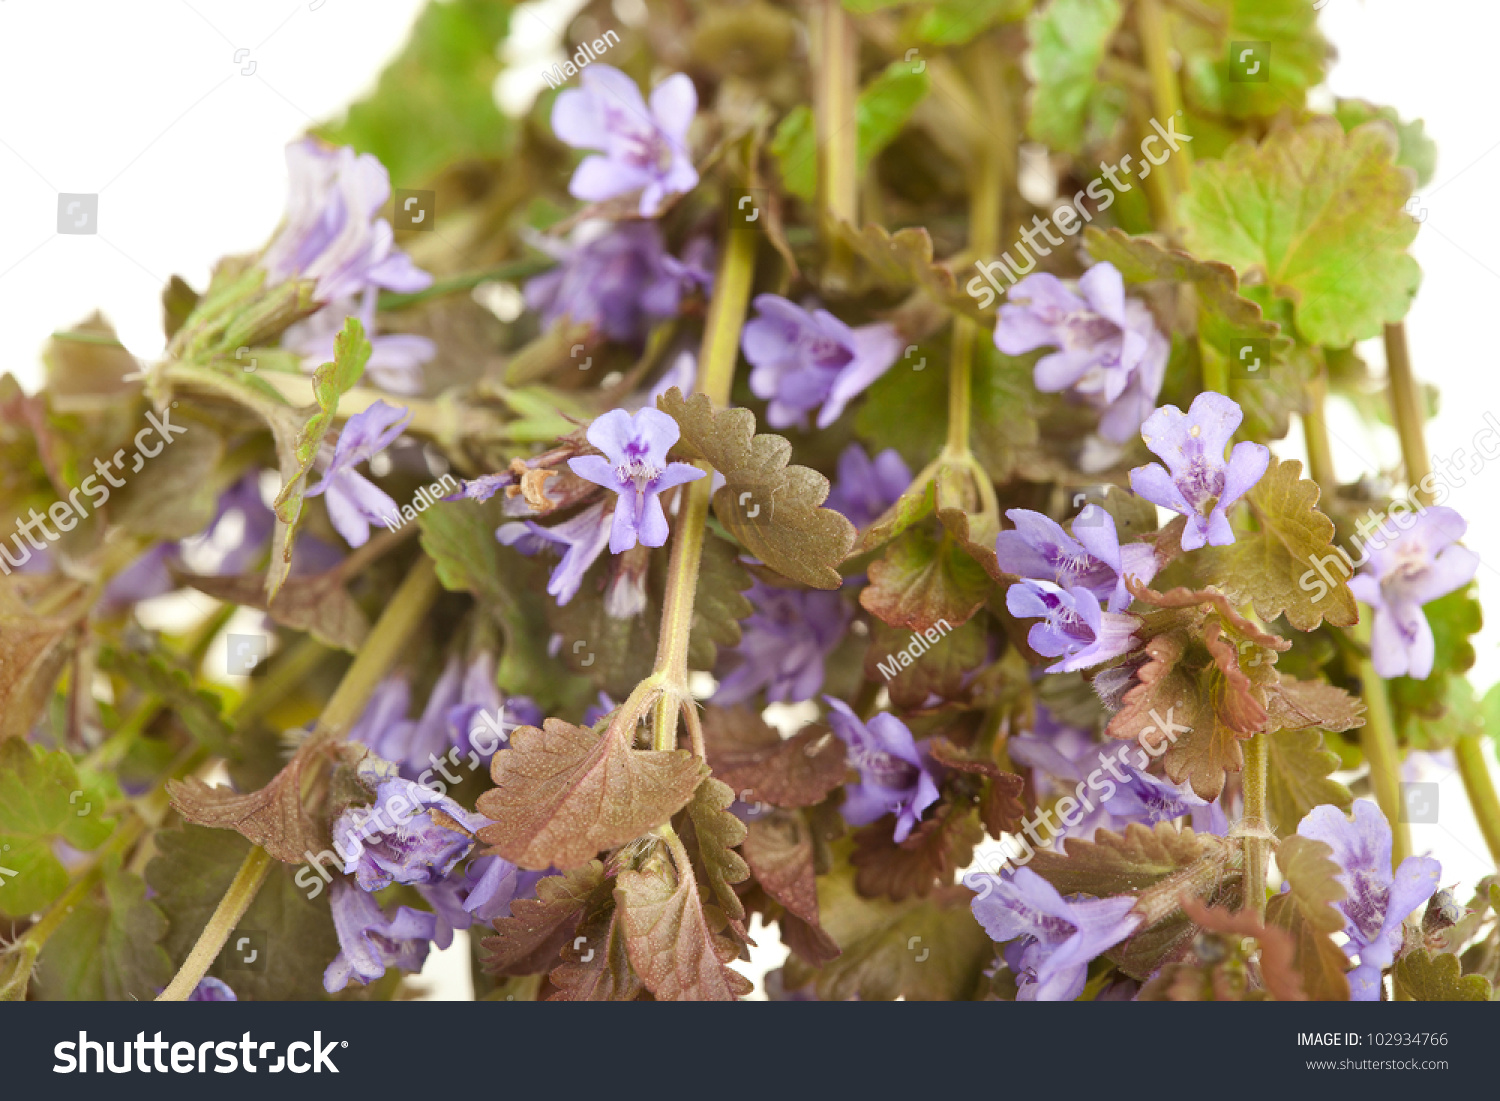 Glechoma Hederacea Creeping Charlie Catsfoot Wild